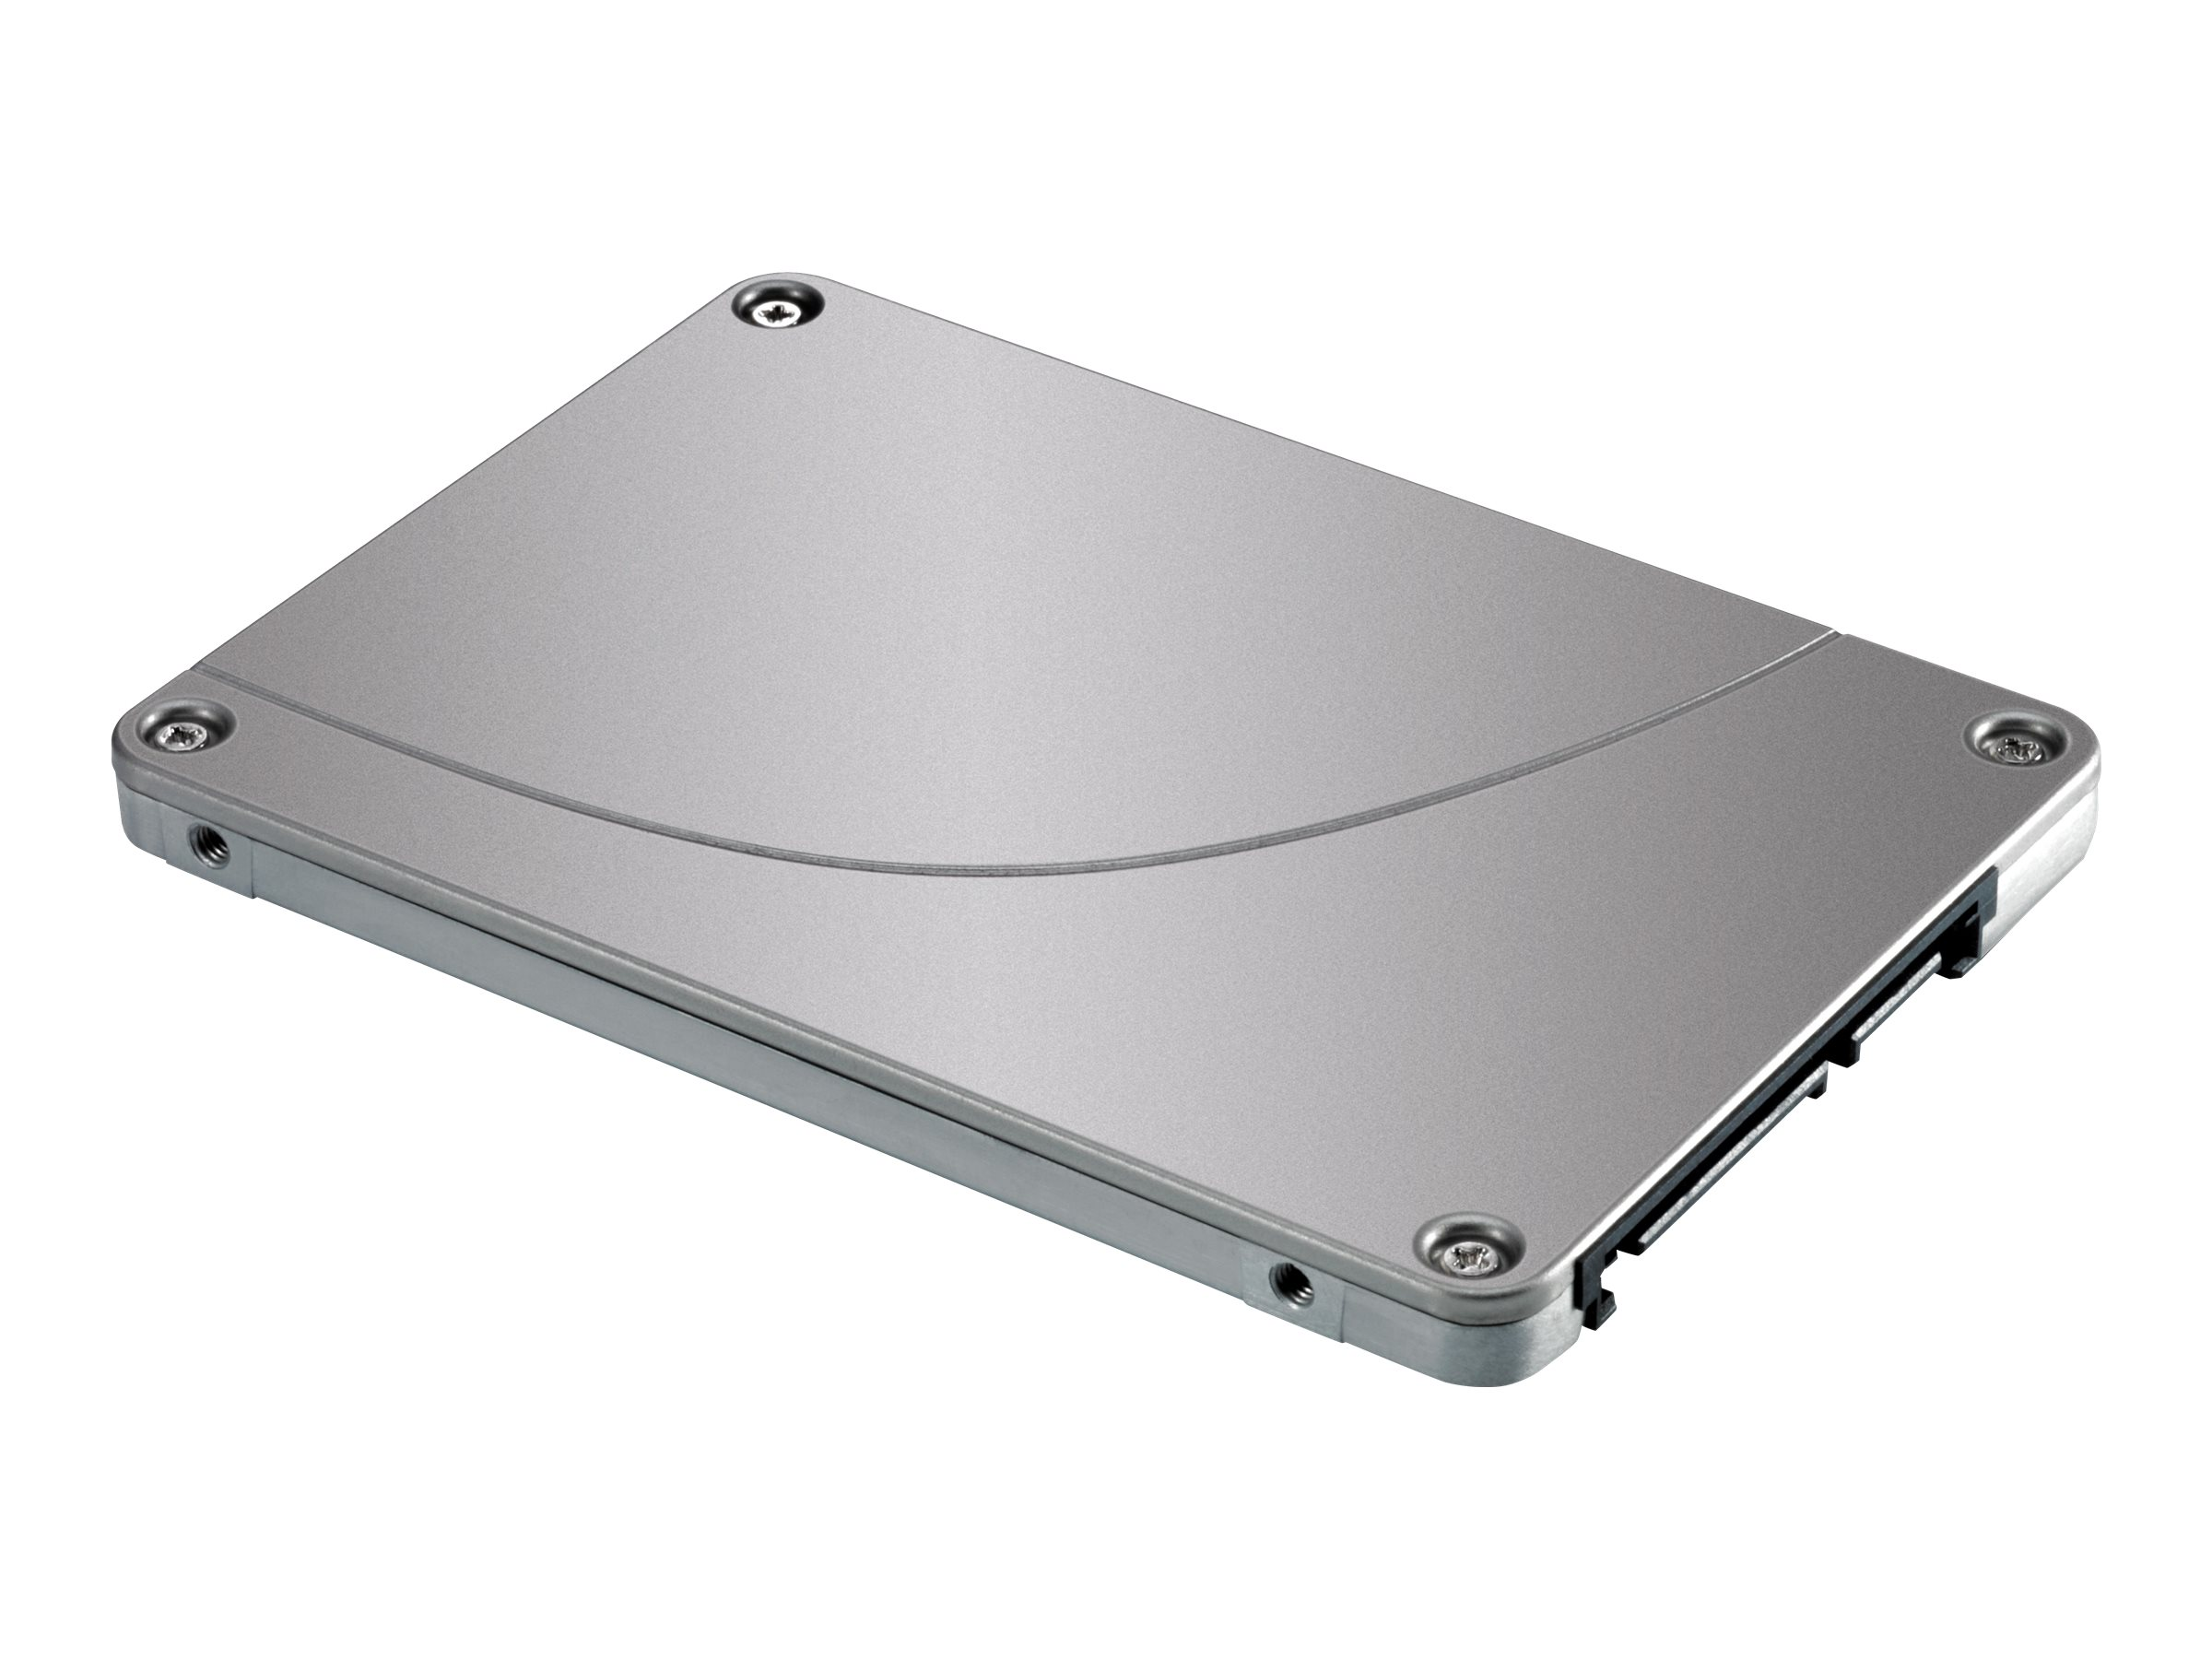 Hp solid state disk 256 gb intern 2 5 sff 6 4 cm sff in 8 9 cm traeger in 3 5 zoll traeger sata 6gb s 2467879 a3d26aa